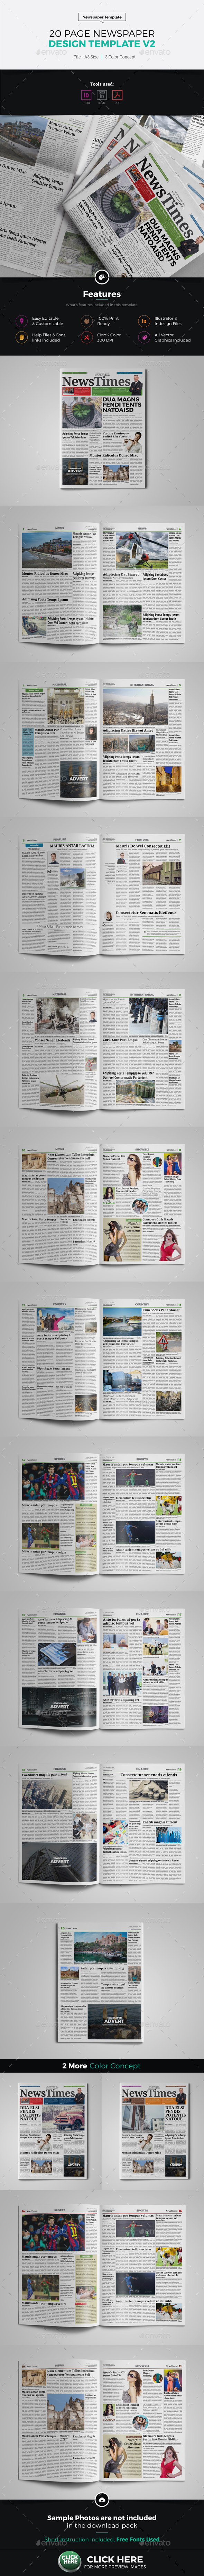 20 Page Newspaper InDesign v2 - Newsletters Print Templates